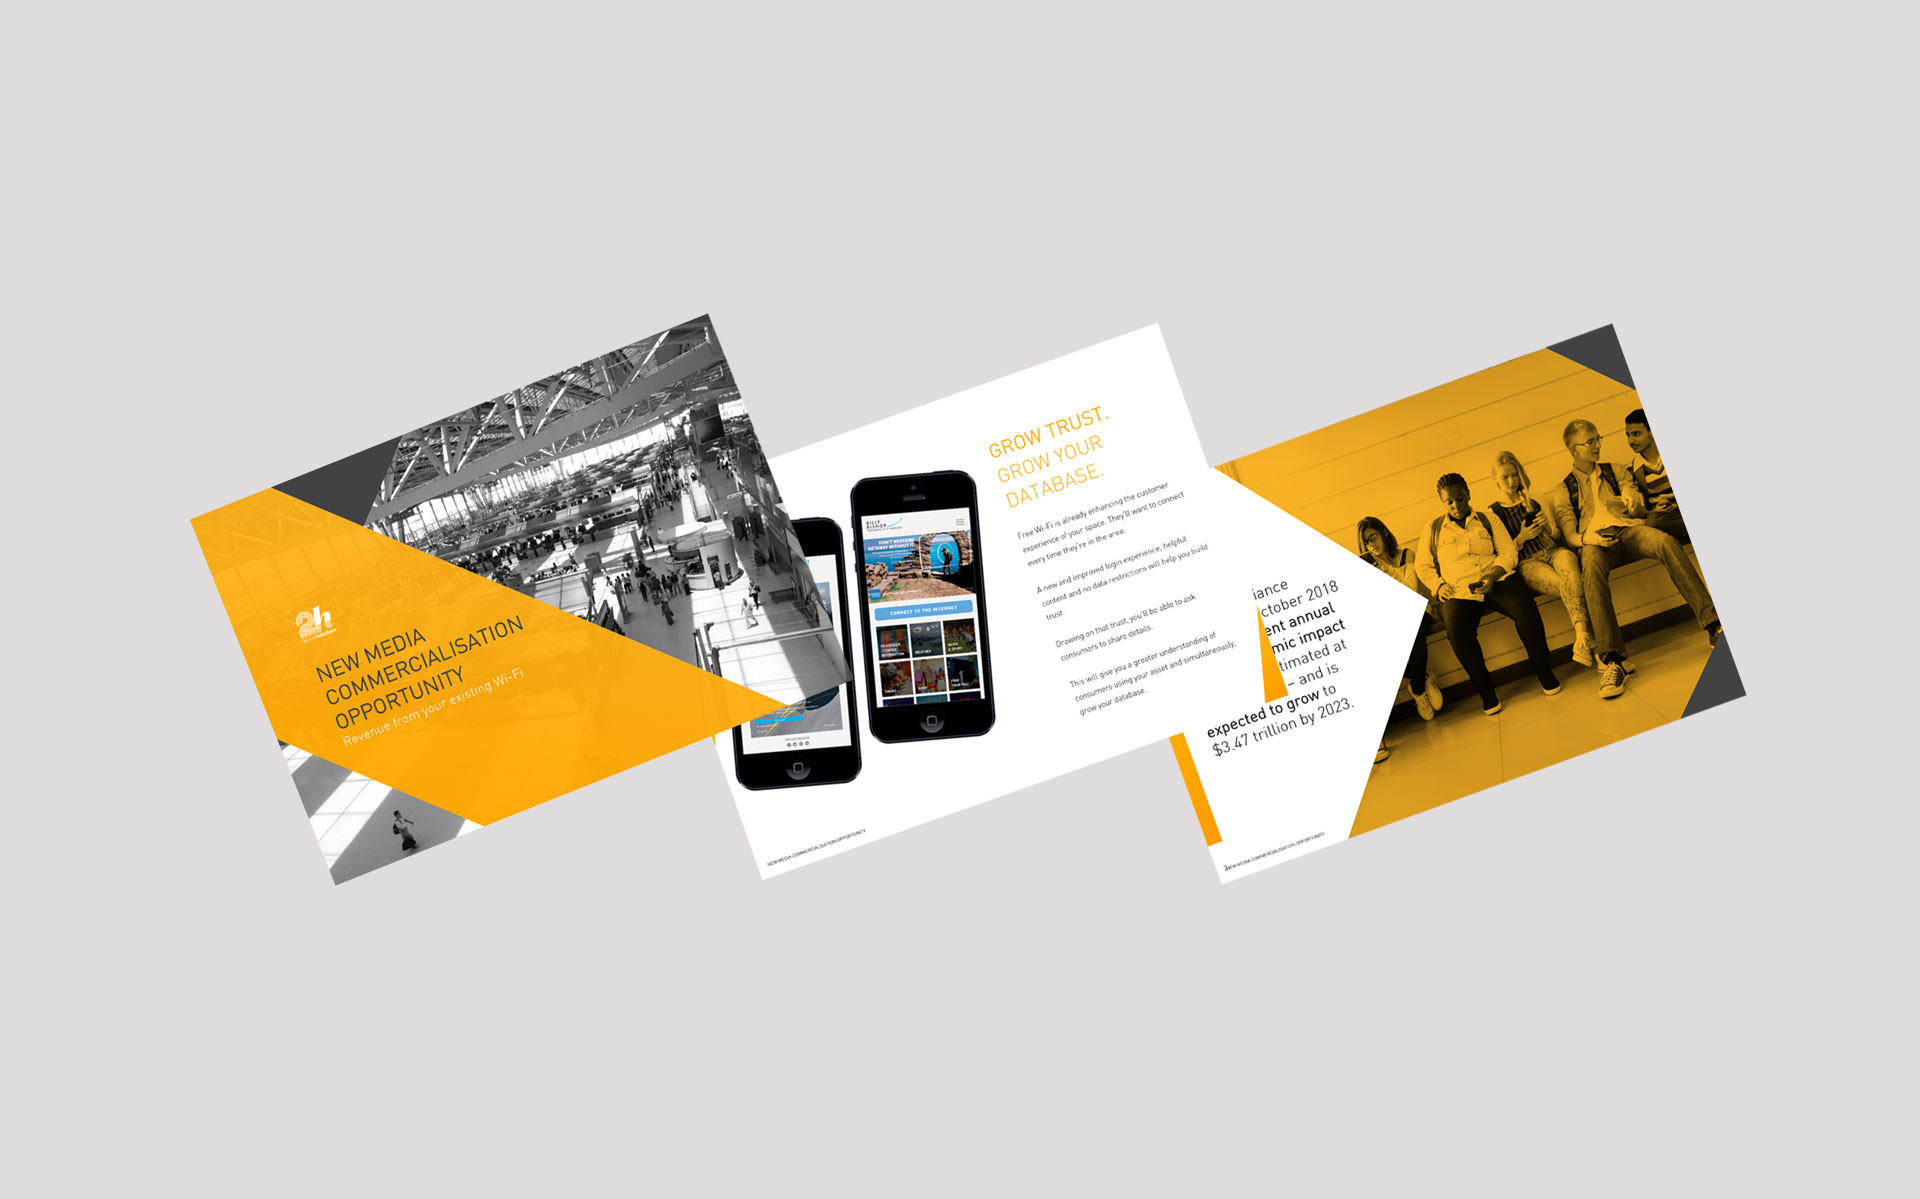 2h Media marketing, publications & powerpoint designed by Amy at Yellow Sunday